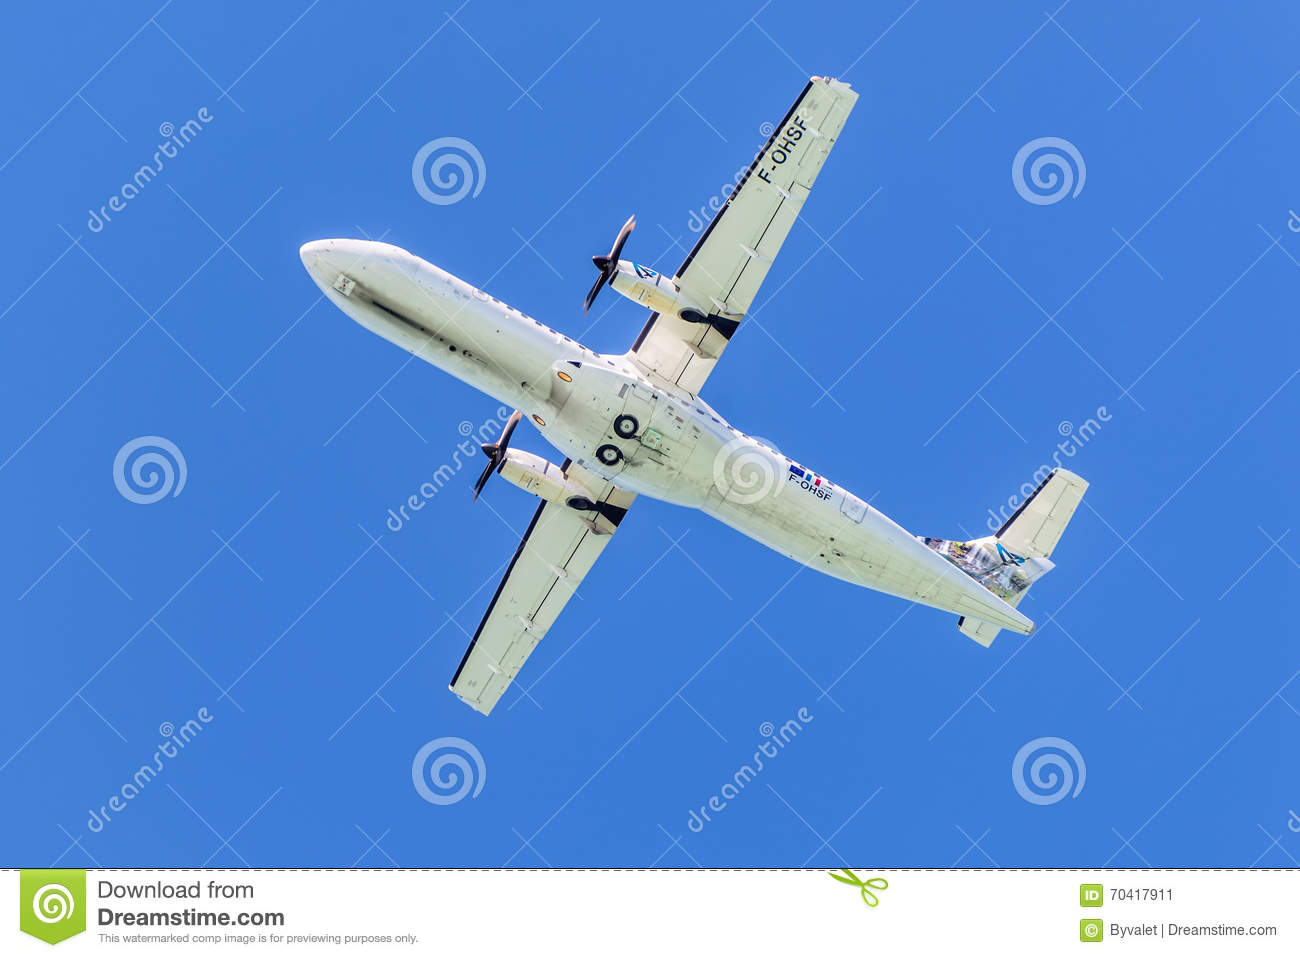 Propeller driven airplane for regional service - ATR 72-500